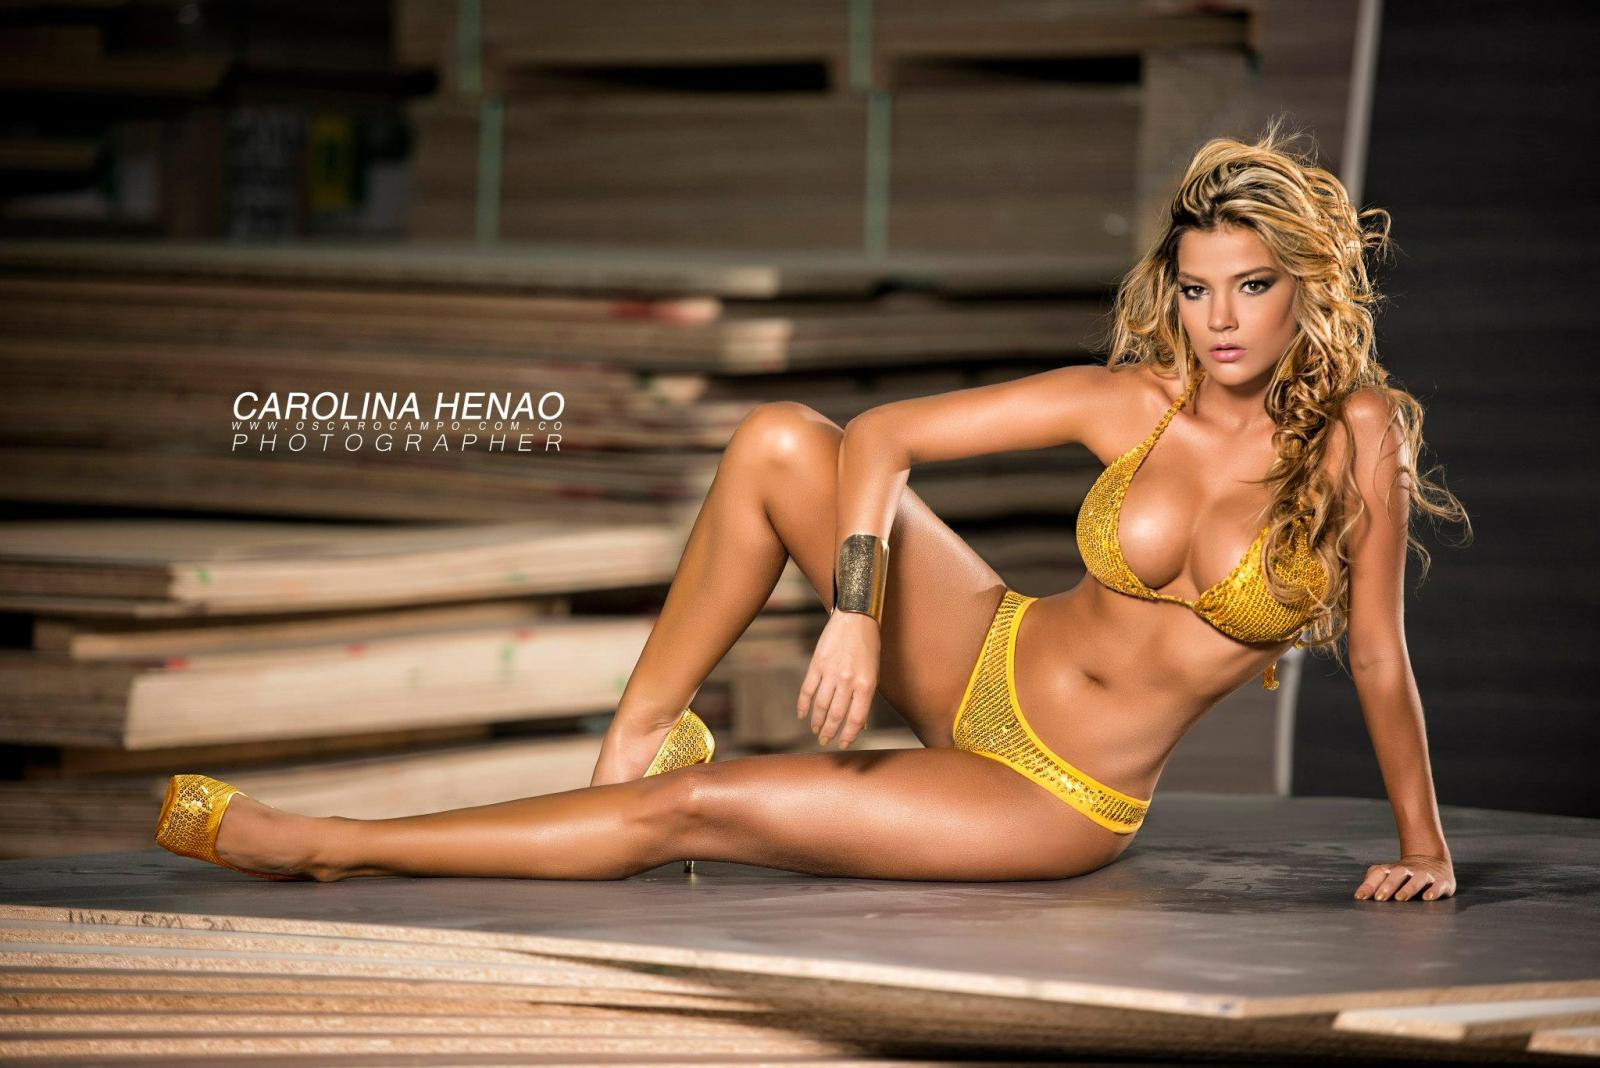 Carolina henao fotos modelo pegateya for Chicas en ropa interior sexi